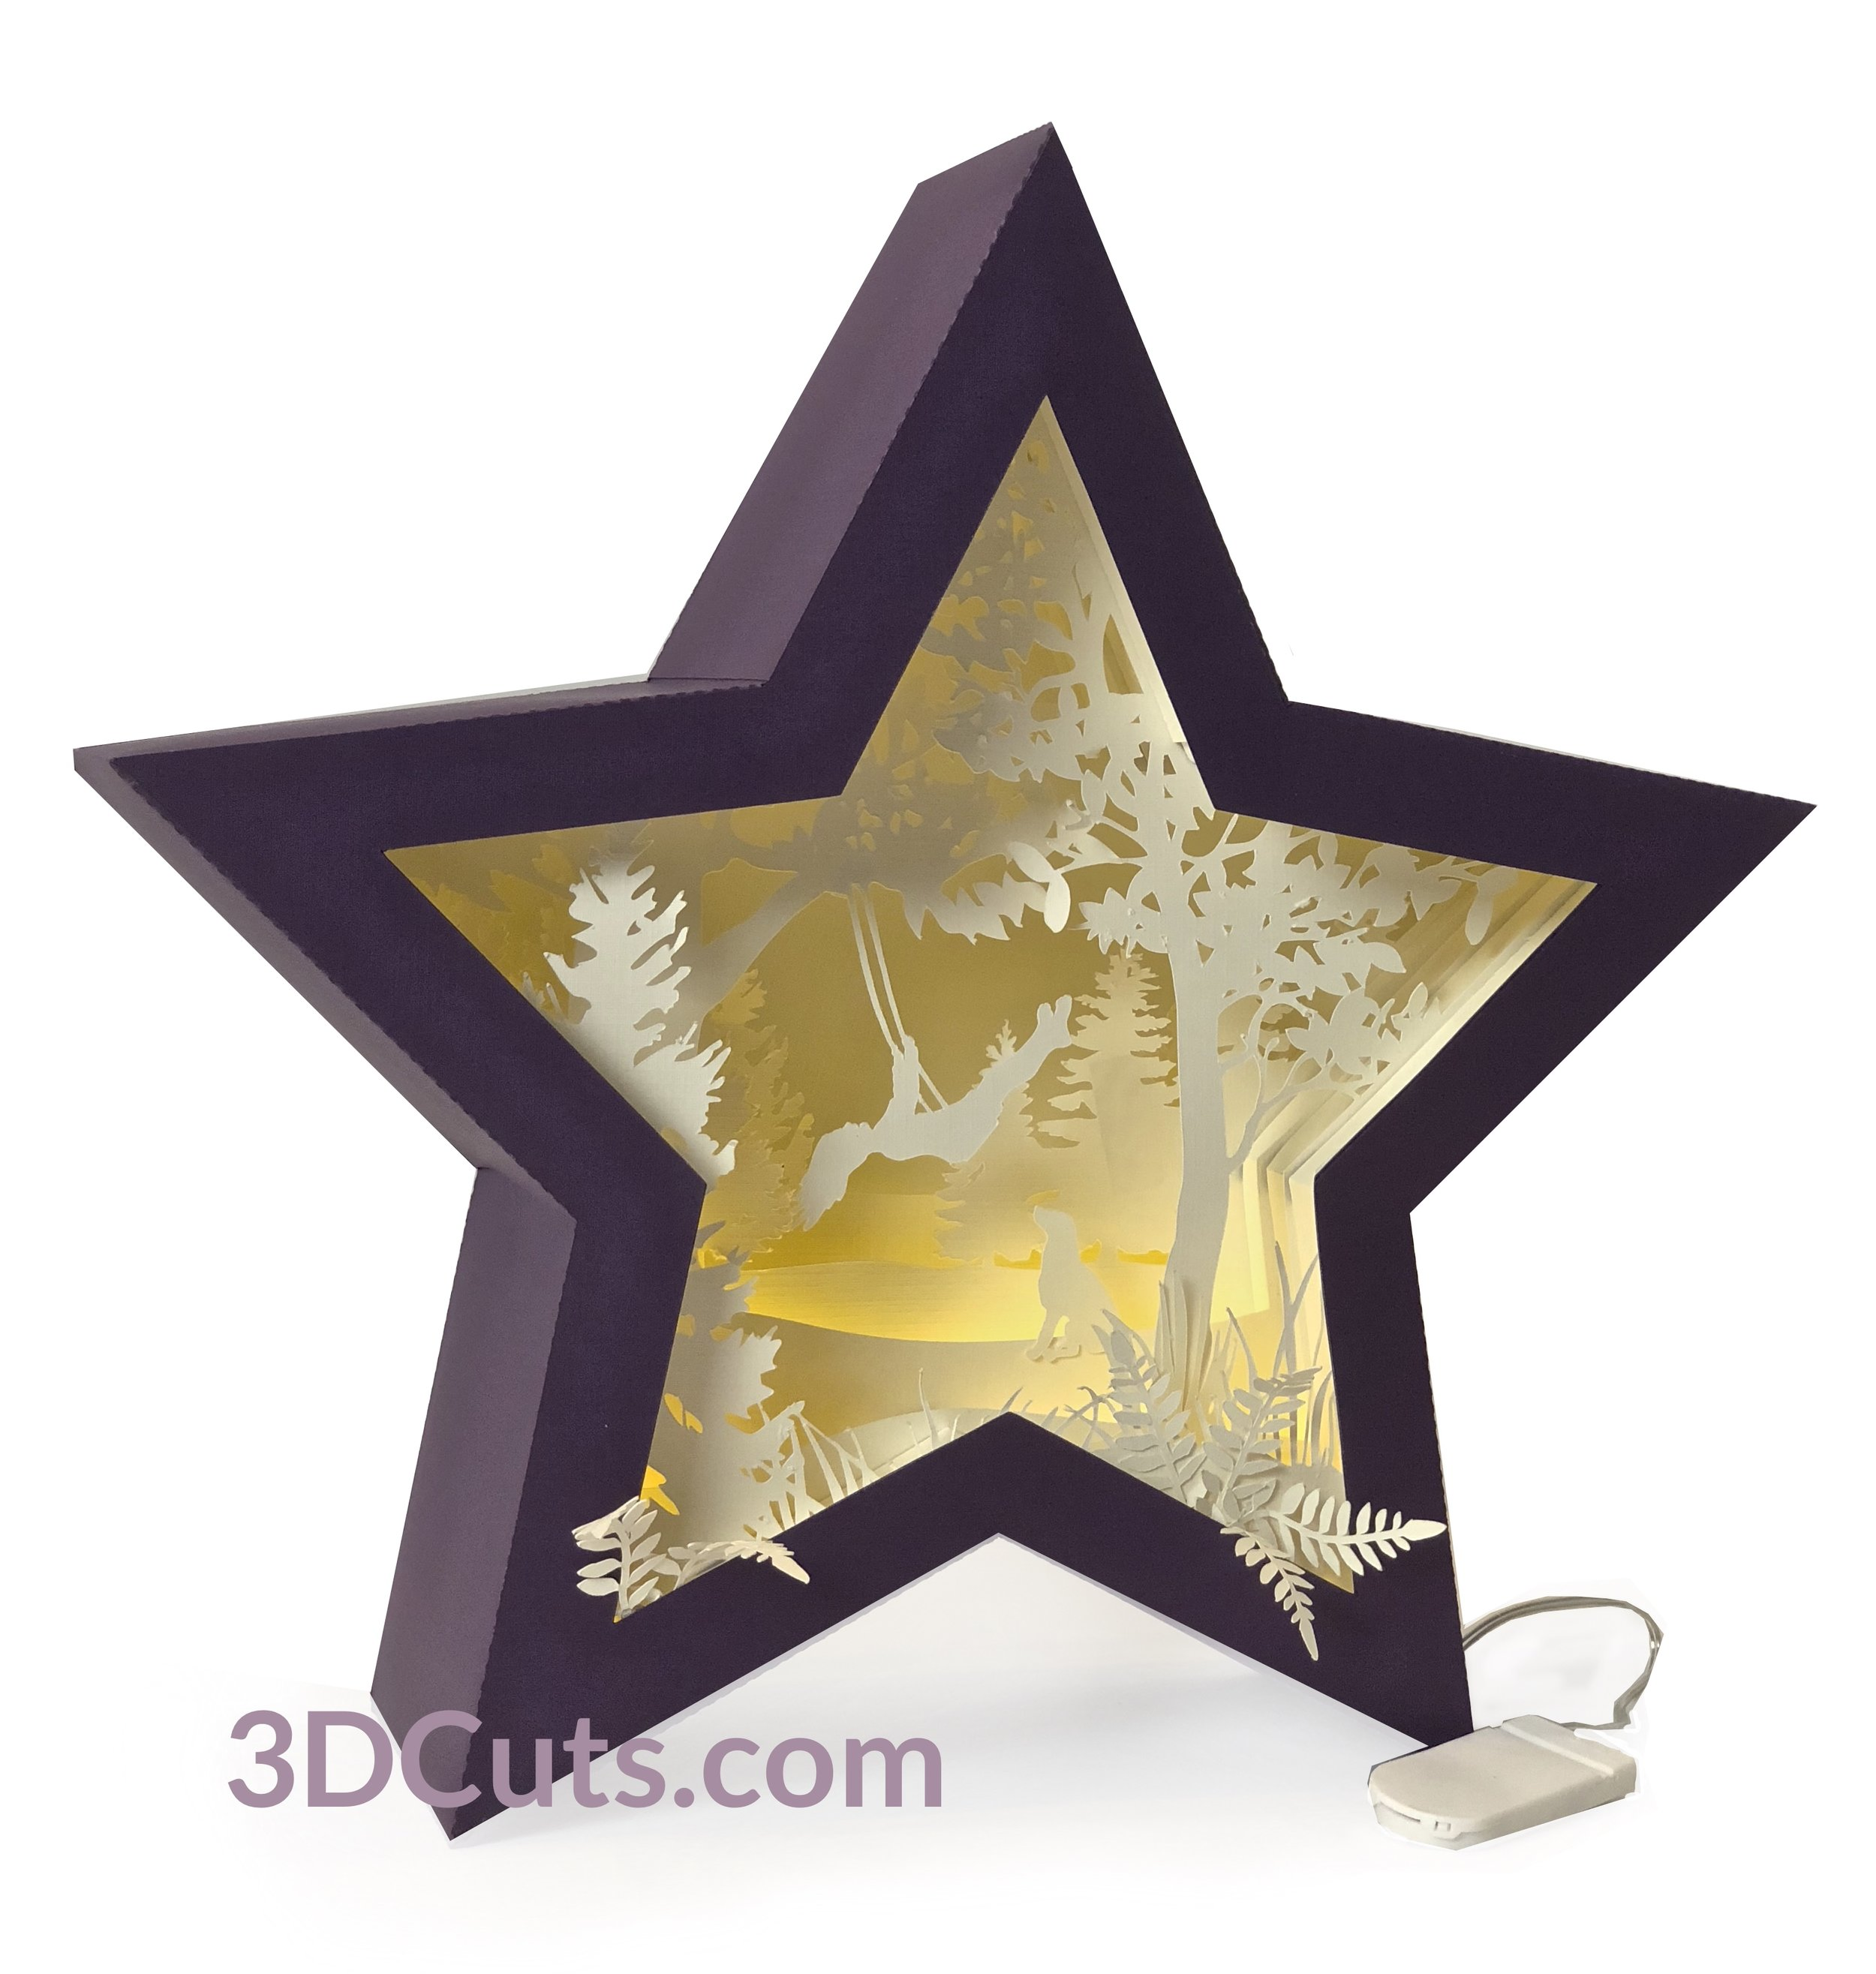 3D illuminated Swinging Girl Star Shadow Box by 3dCuts.com, Marji Roy, Light Box, 3D cutting files in .svg, .dxf, png and .pdf formats for use with Silhouette, Cricut and Brother cutting machines, paper crafting files, SVG Files